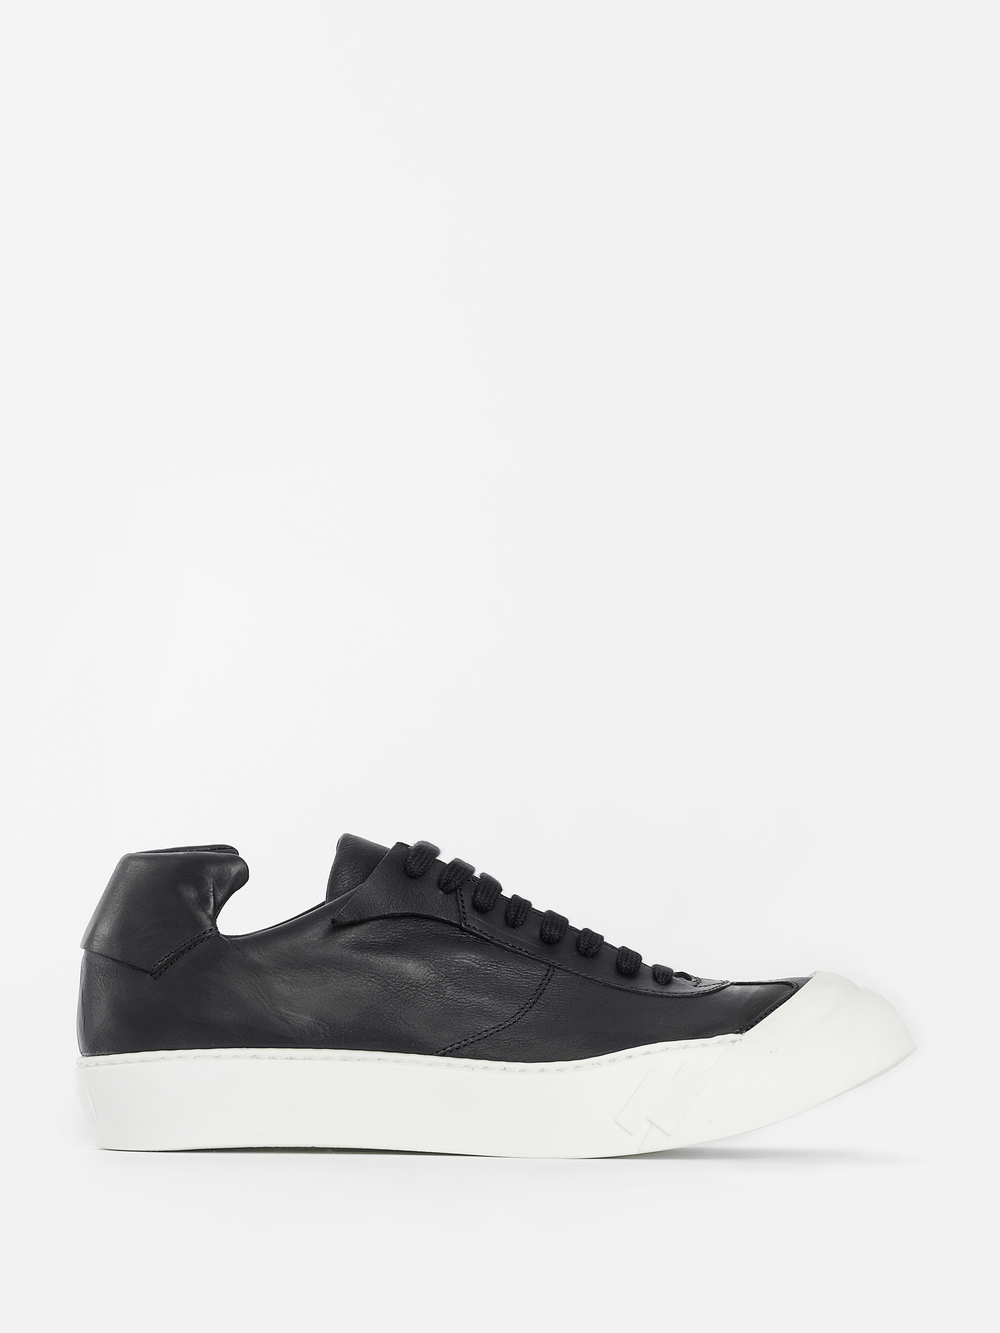 Image of Cinzia Araia Sneakers